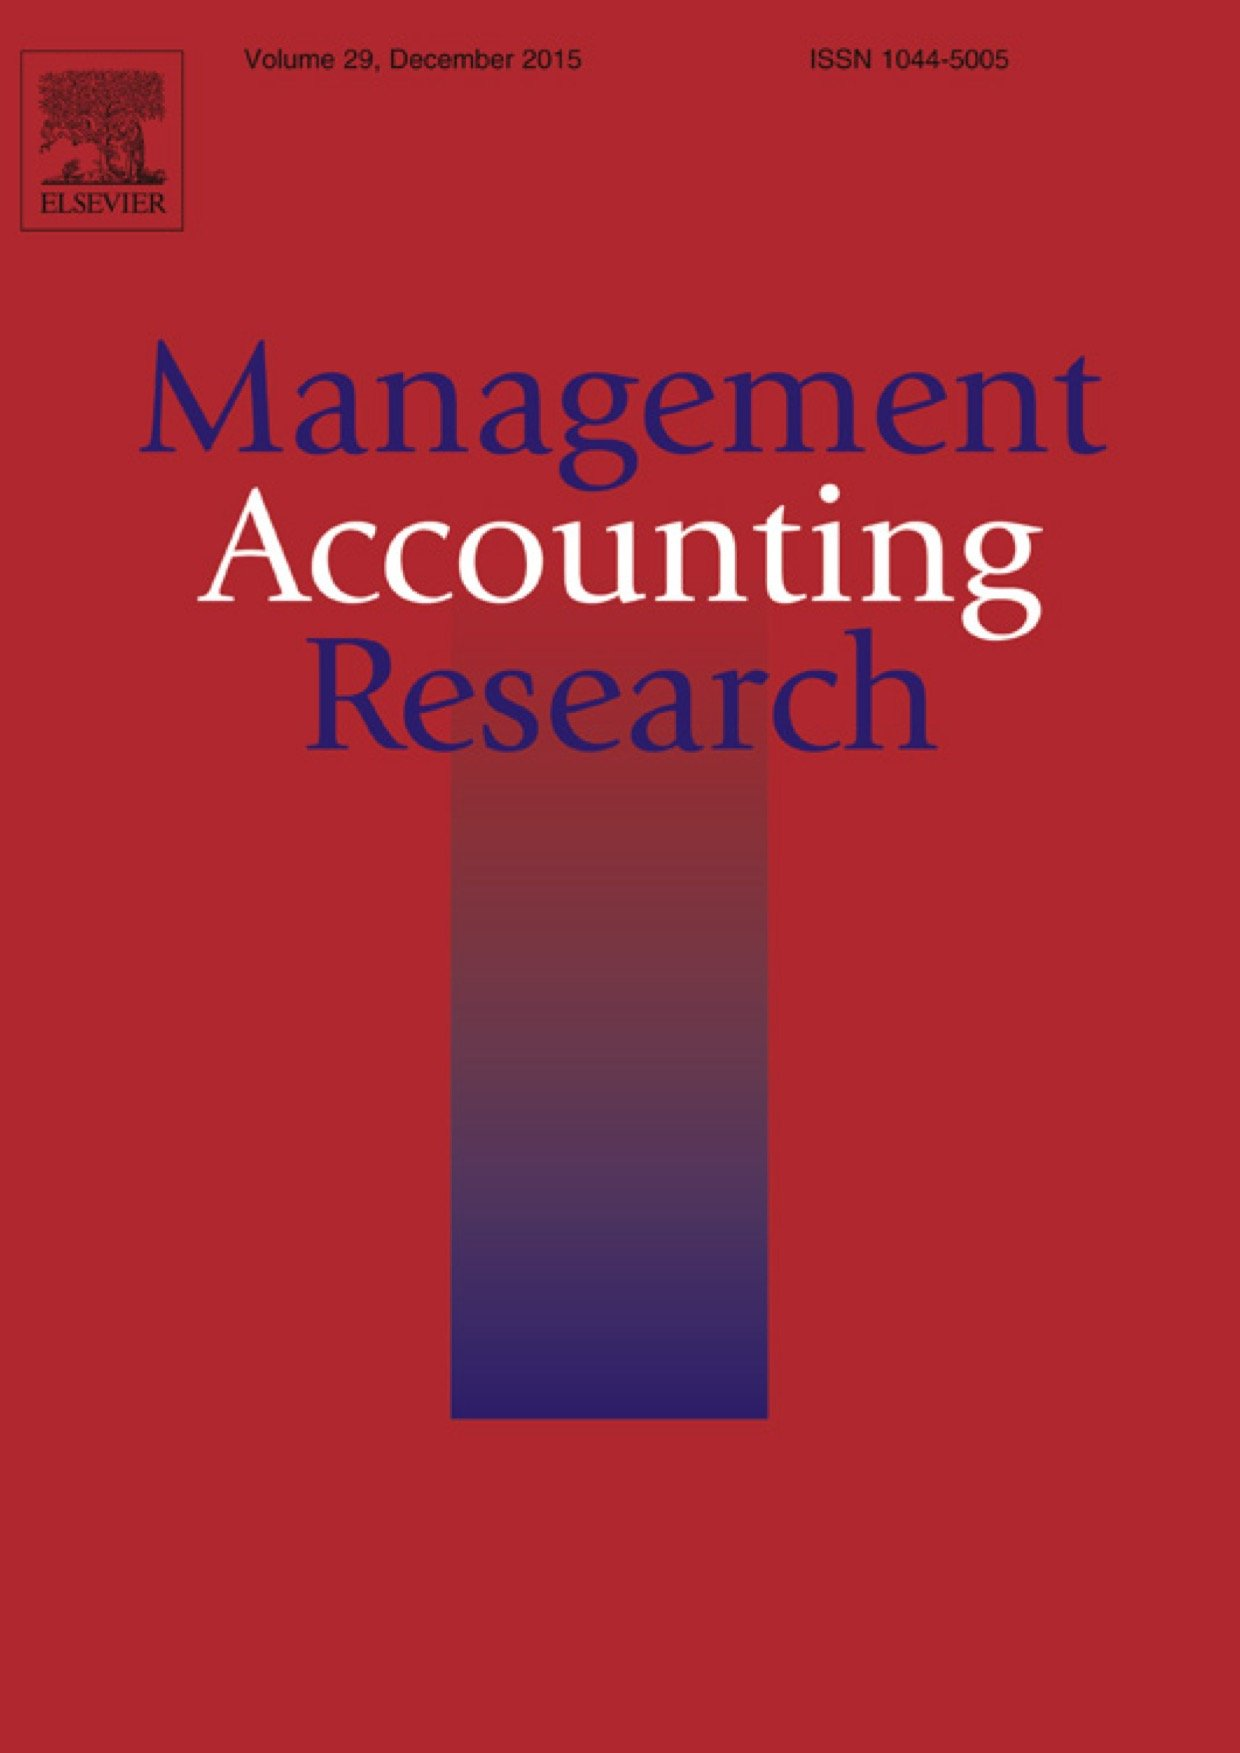 management accounting techniques - research papers Are some published papers on cost and management accounting practices in turkish national scientific journals of accounting, and economics and administrative sciences, there are not at all publications in international journals.